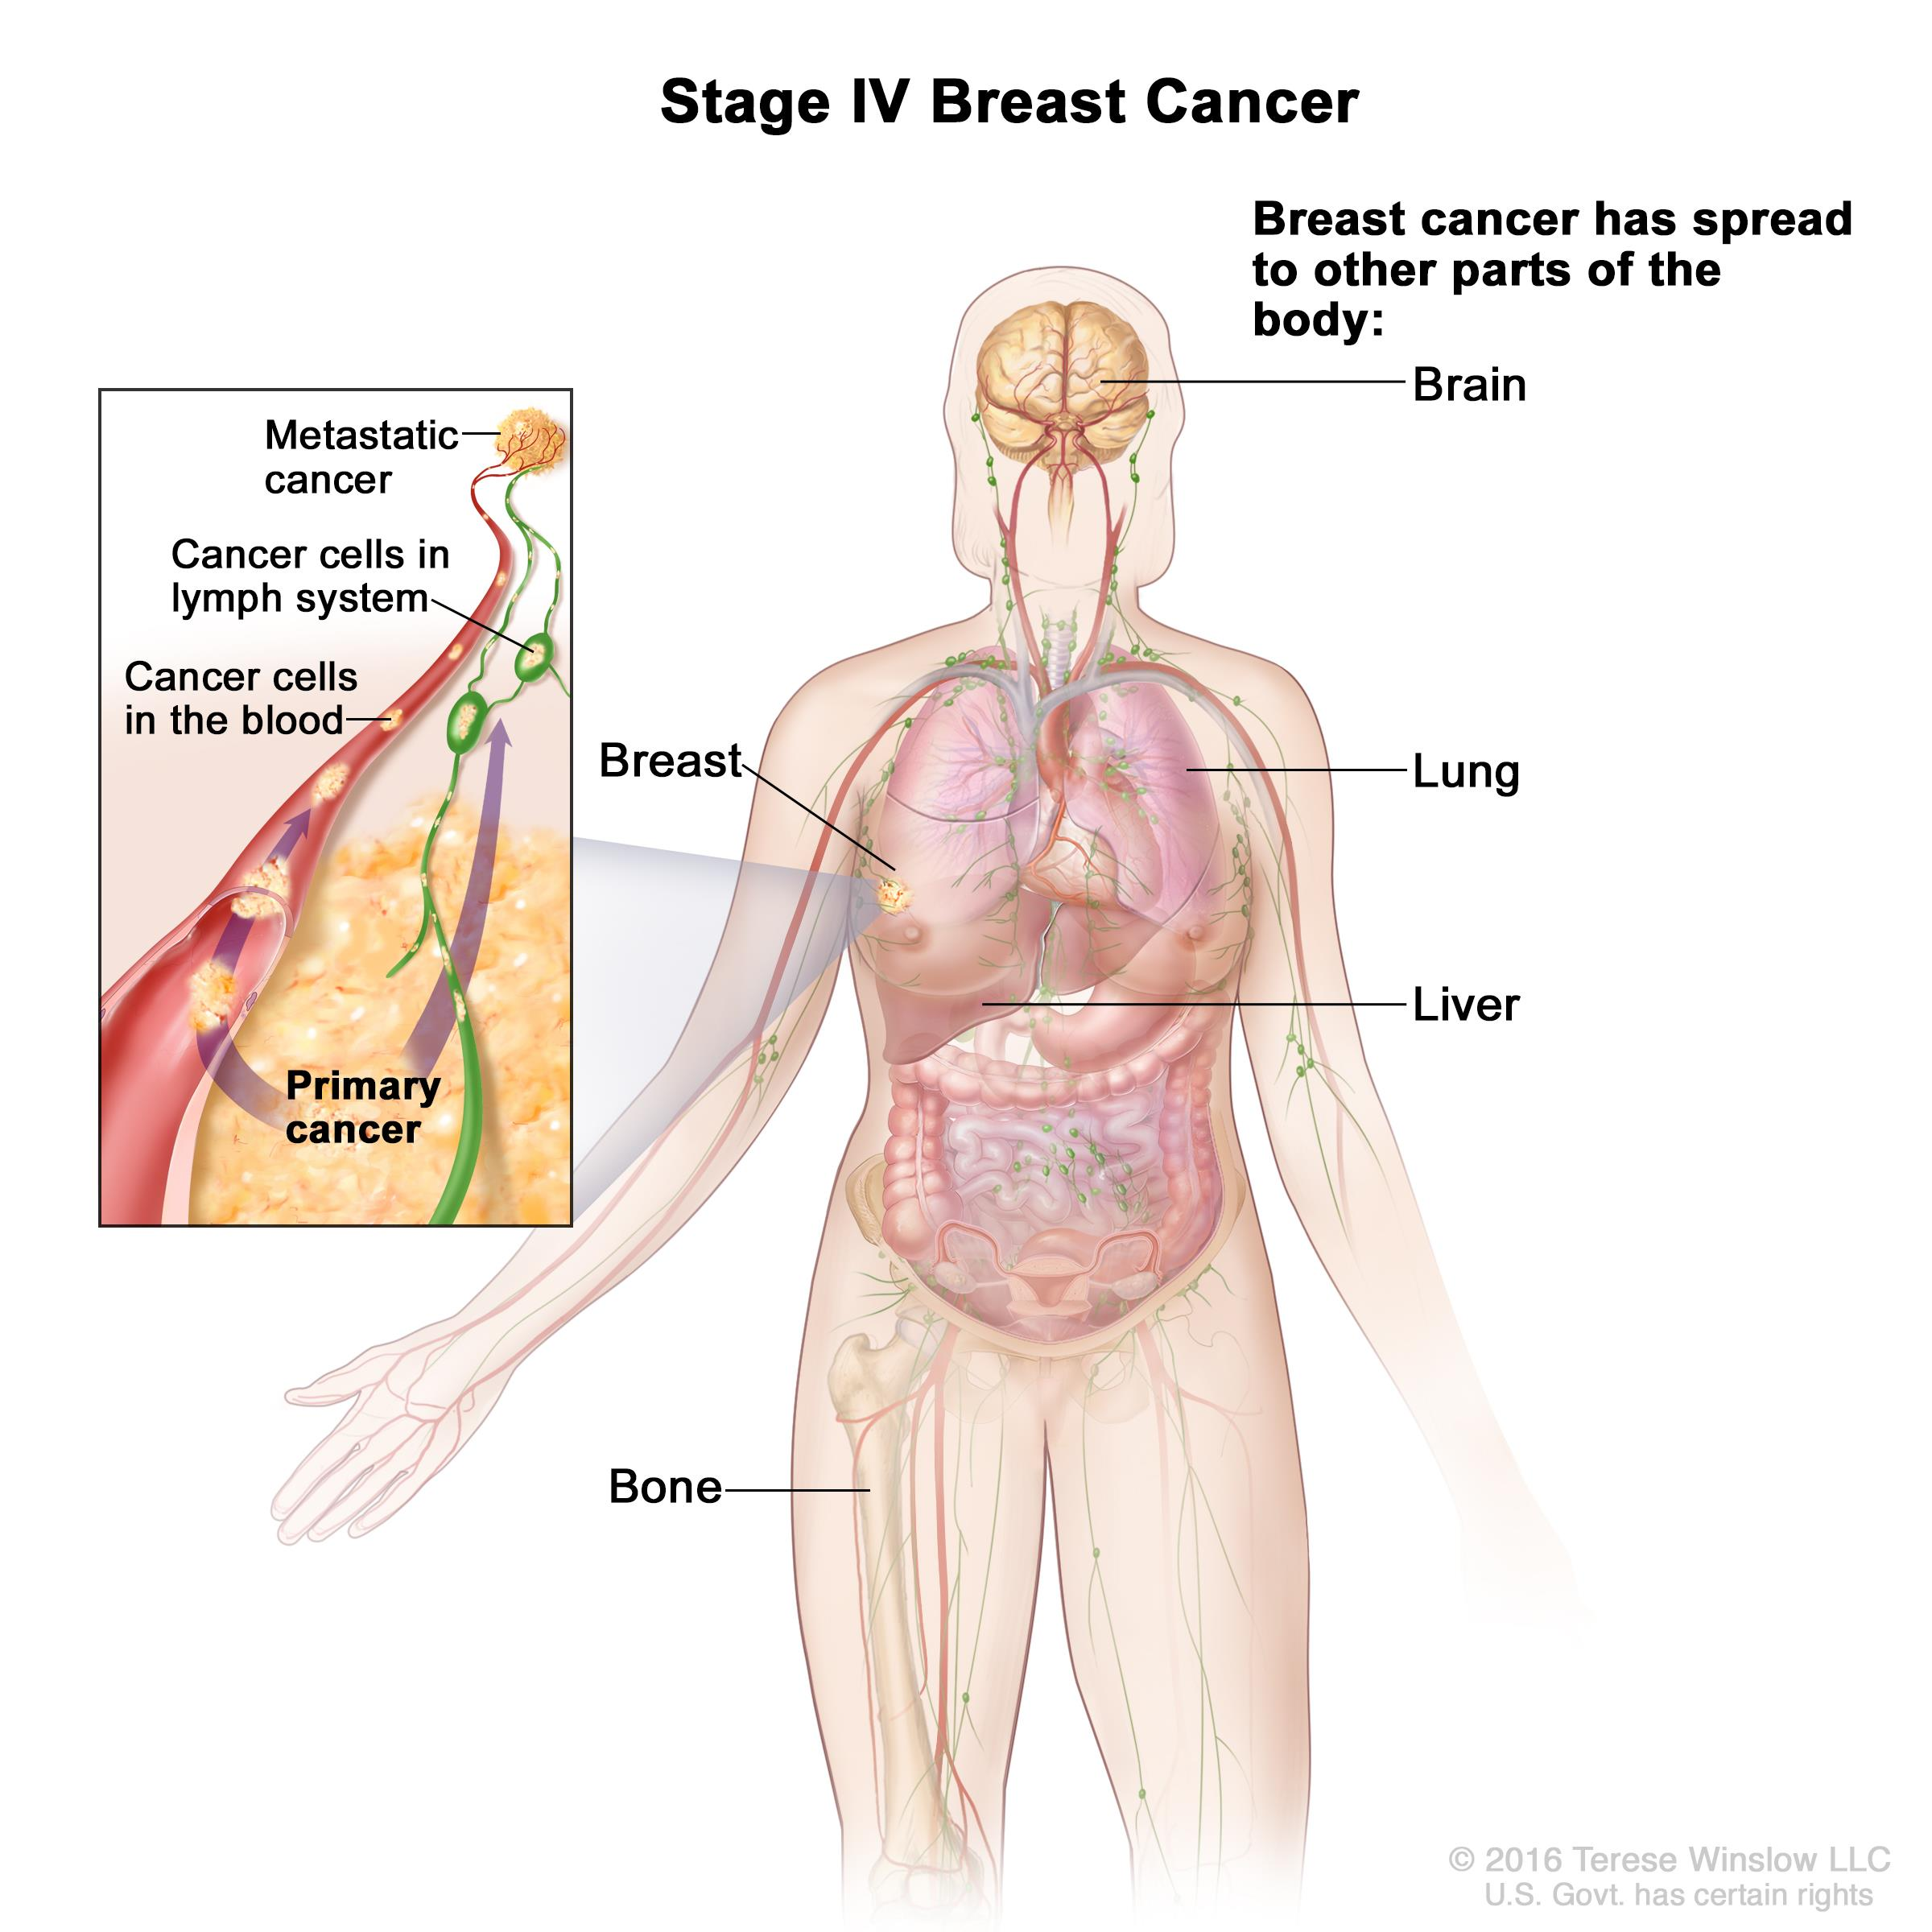 Stage IV breast cancer; drawing shows other parts of the body where breast cancer may spread, including the brain, lung, liver, and bone. An inset shows cancer cells spreading from the breast, through the blood and lymph system, to another part of the body where metastatic cancer has formed.